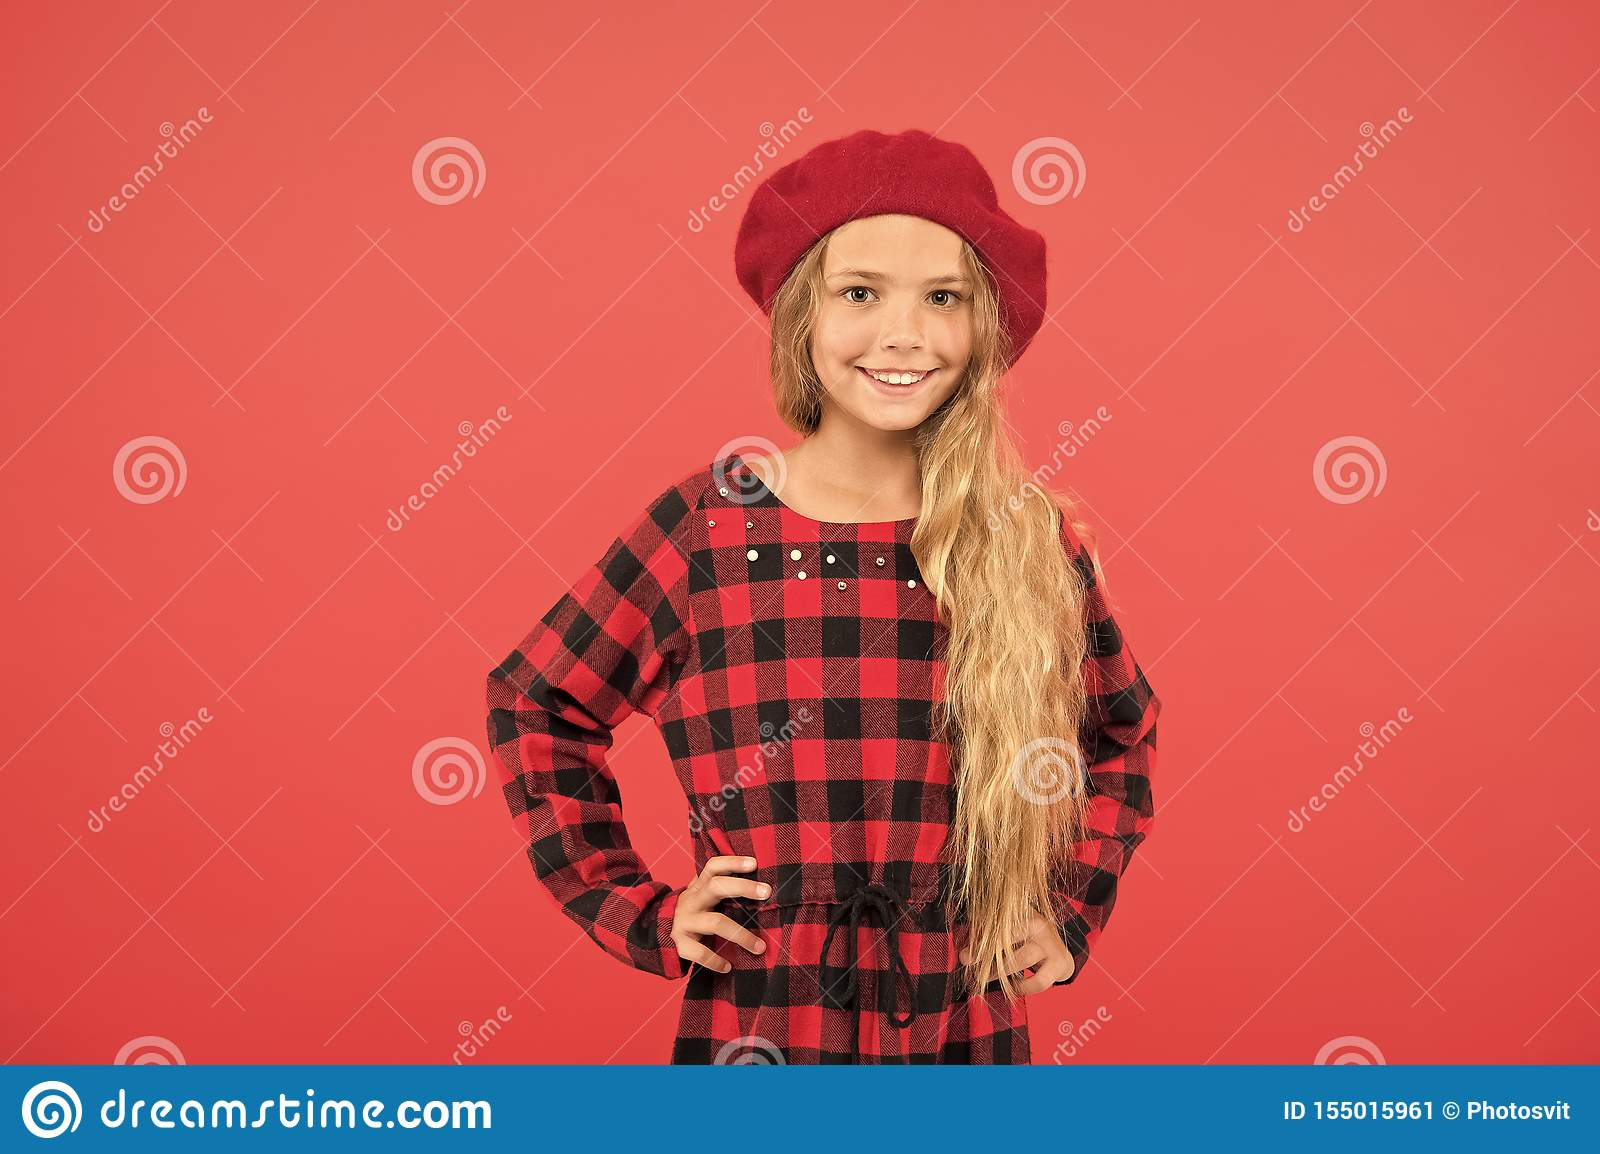 Beret style inspiration. Wear beret like fashion girl. Kid little cute girl with long blonde hair posing in beret hat